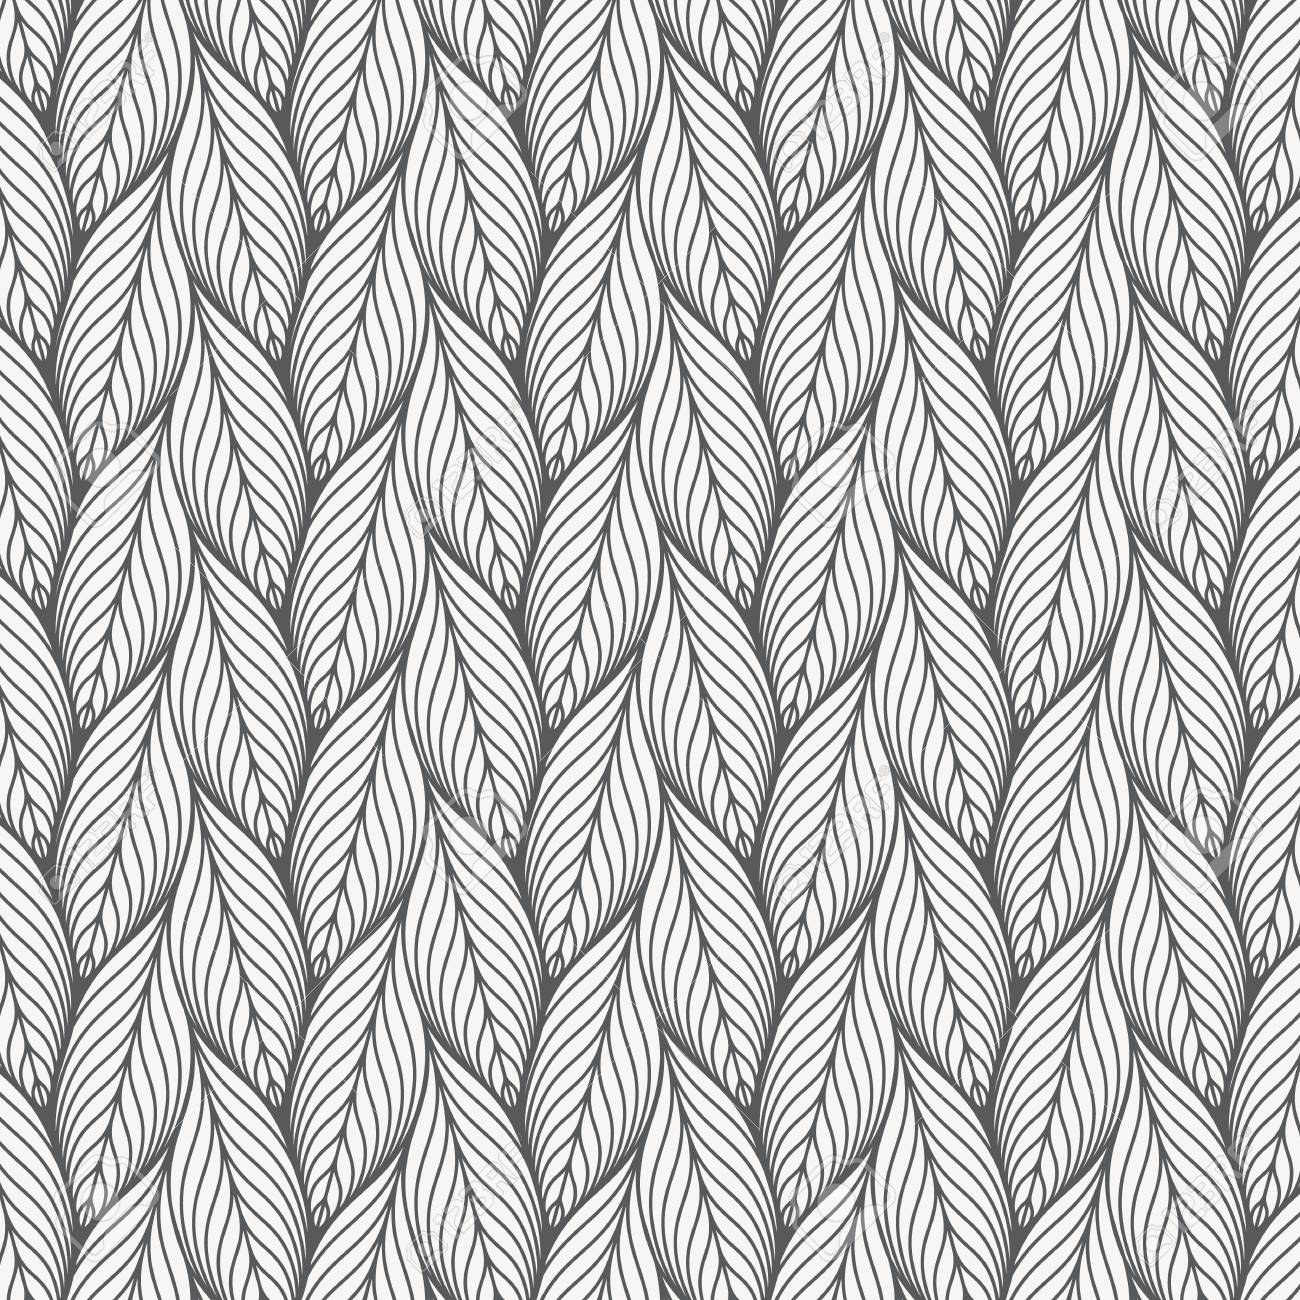 abstract linear leaves vector pattern, repeating small skeleton leaf, clean stylish vector for background